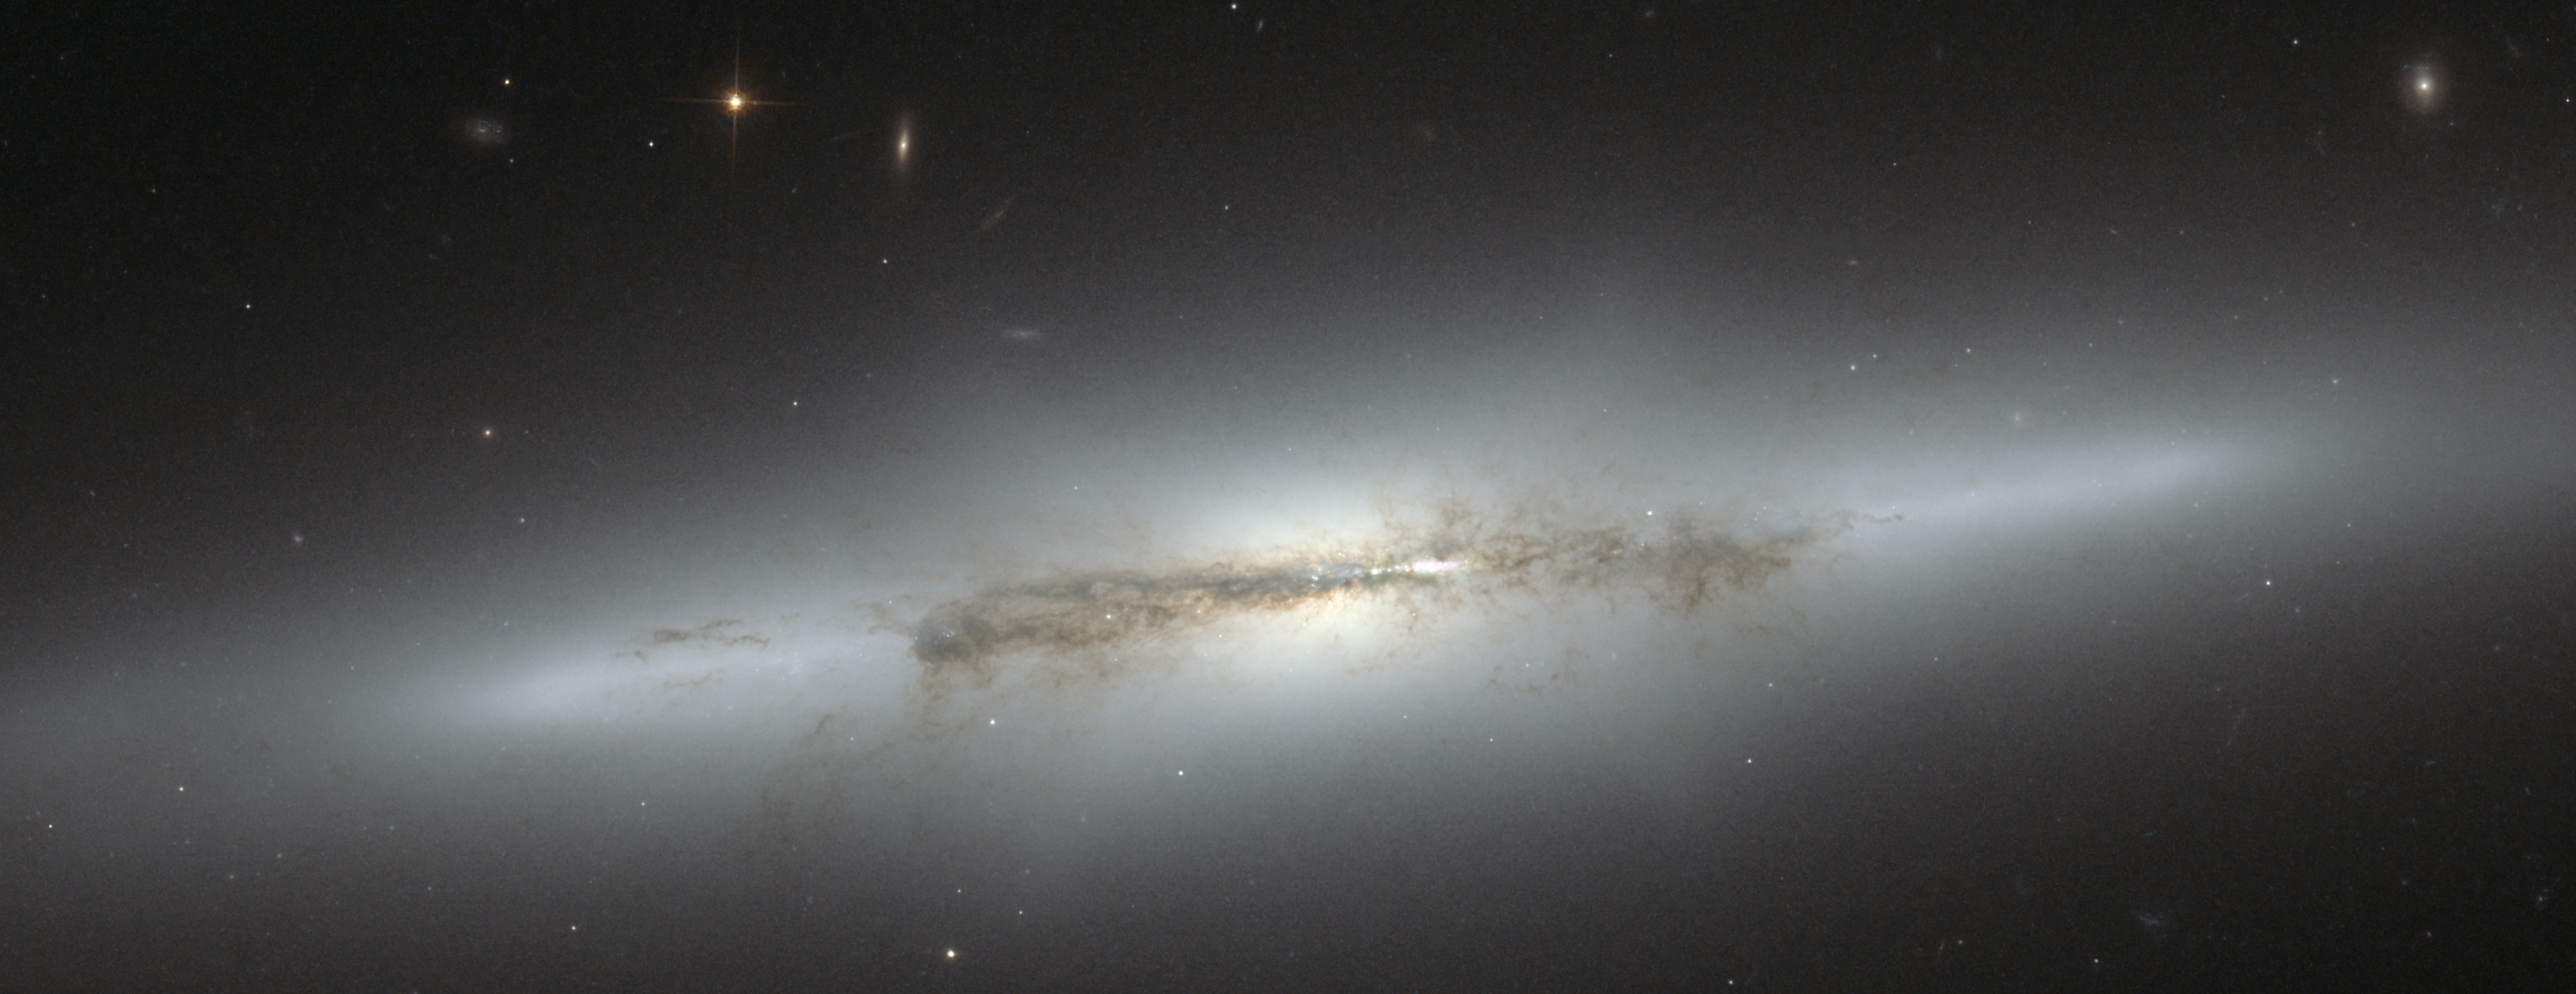 Galaxy NGC 4710 is tilted nearly edge-on to our view from Earth